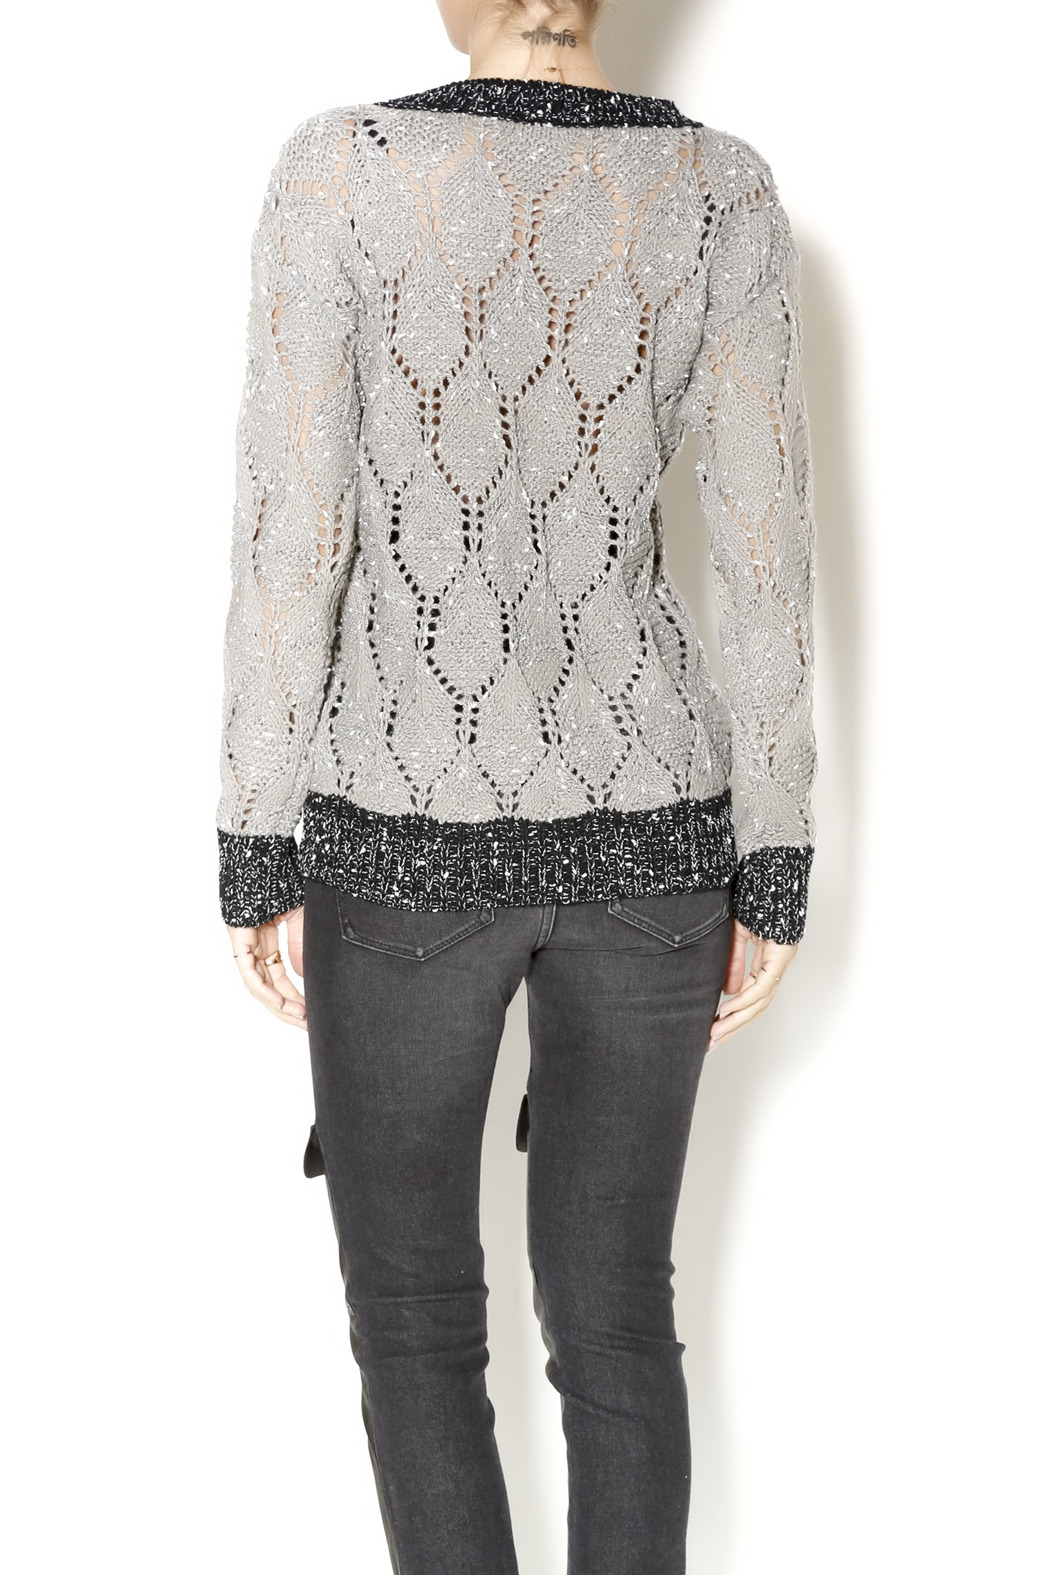 POL Knit Boyfriend Sweater from New Jersey by Blue Sky Boutique   Shoptiques